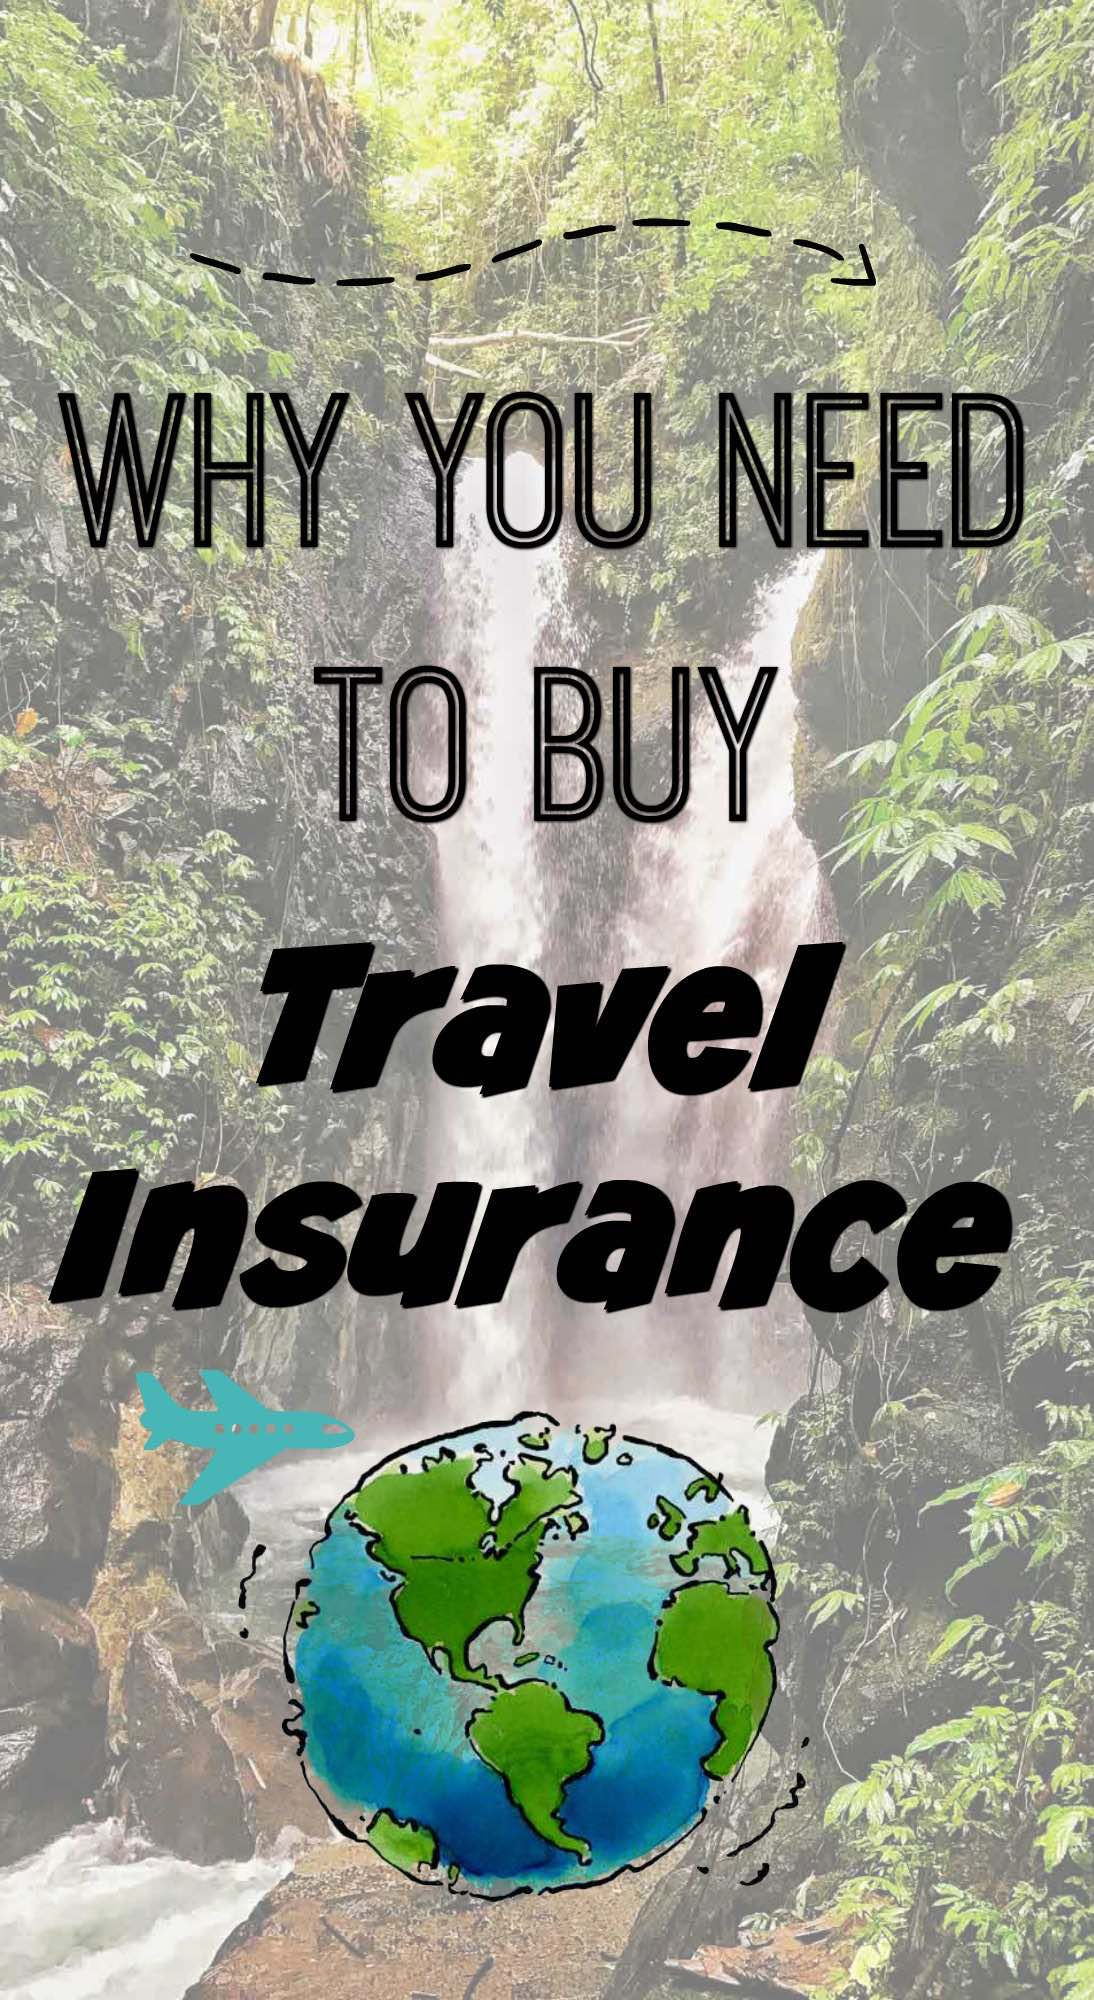 Why you need to buy travel insurance